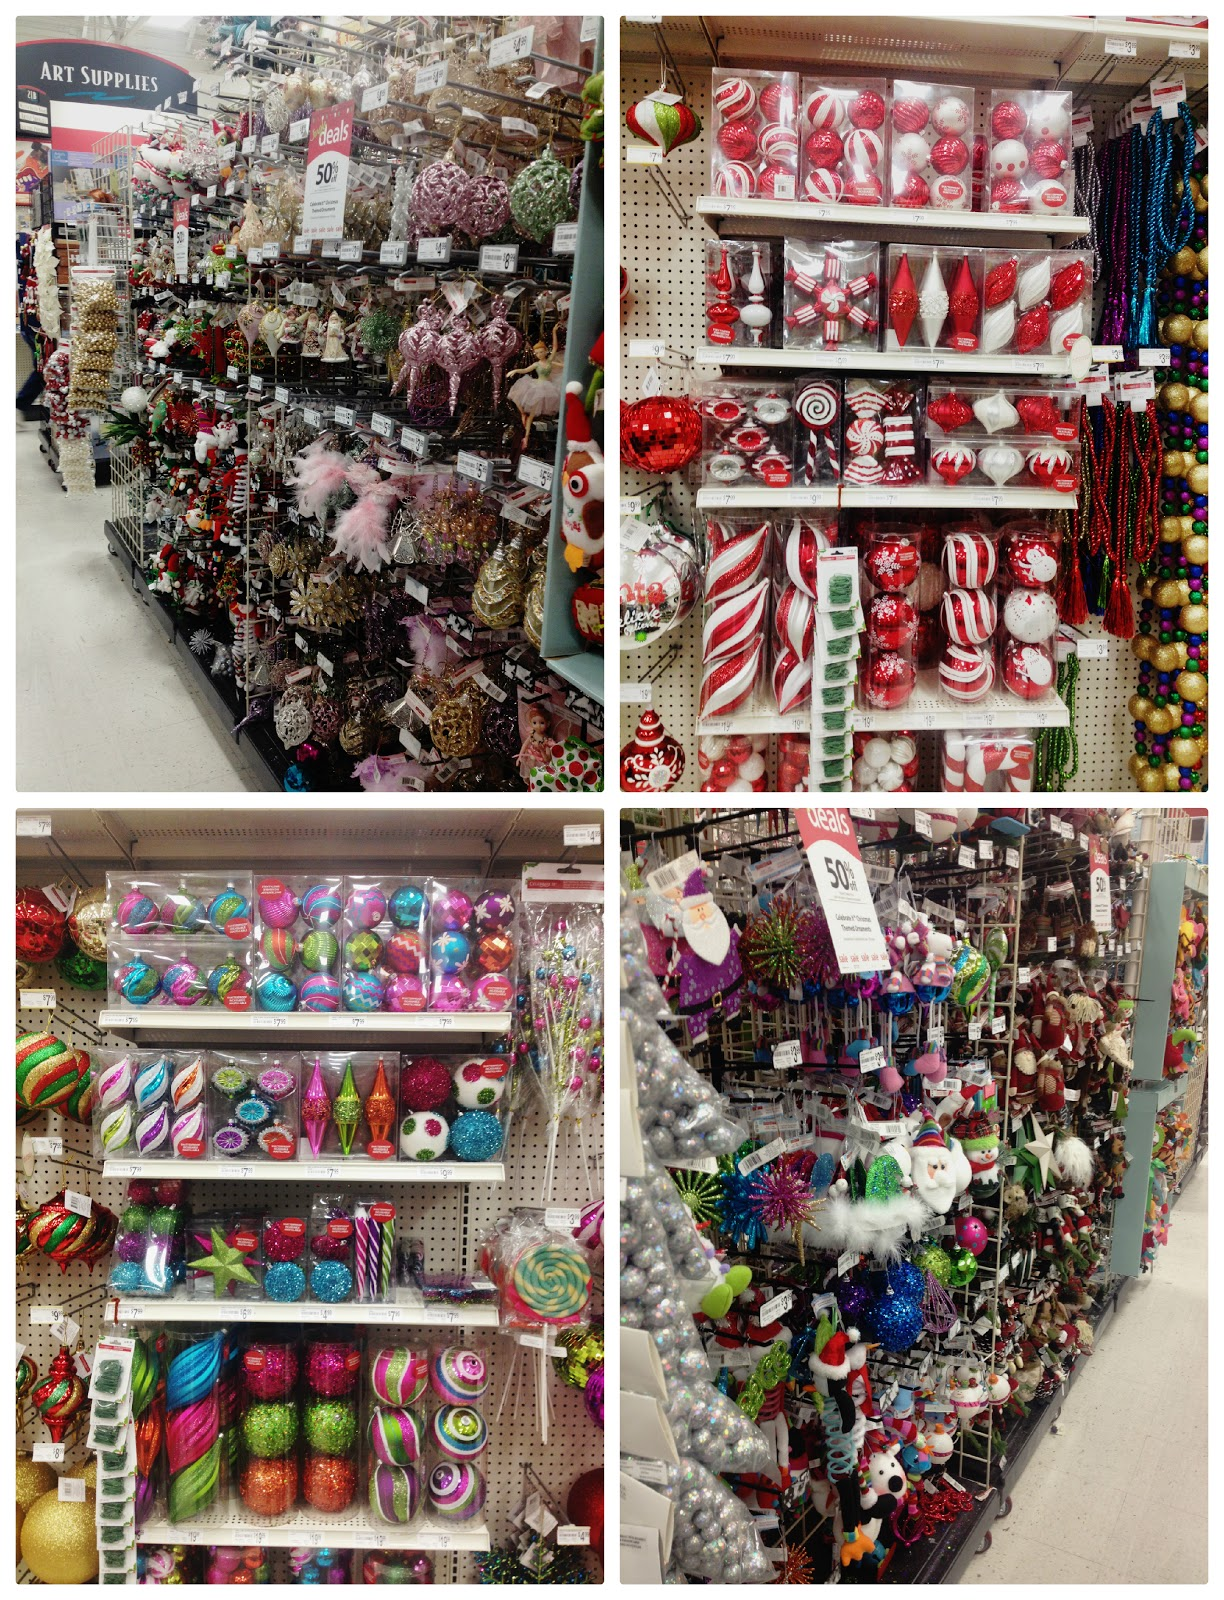 And To Simplify The Decorating Process Michaels Offers Christmas Themes That Take Guesswork Out Of With Coordinating Ornaments